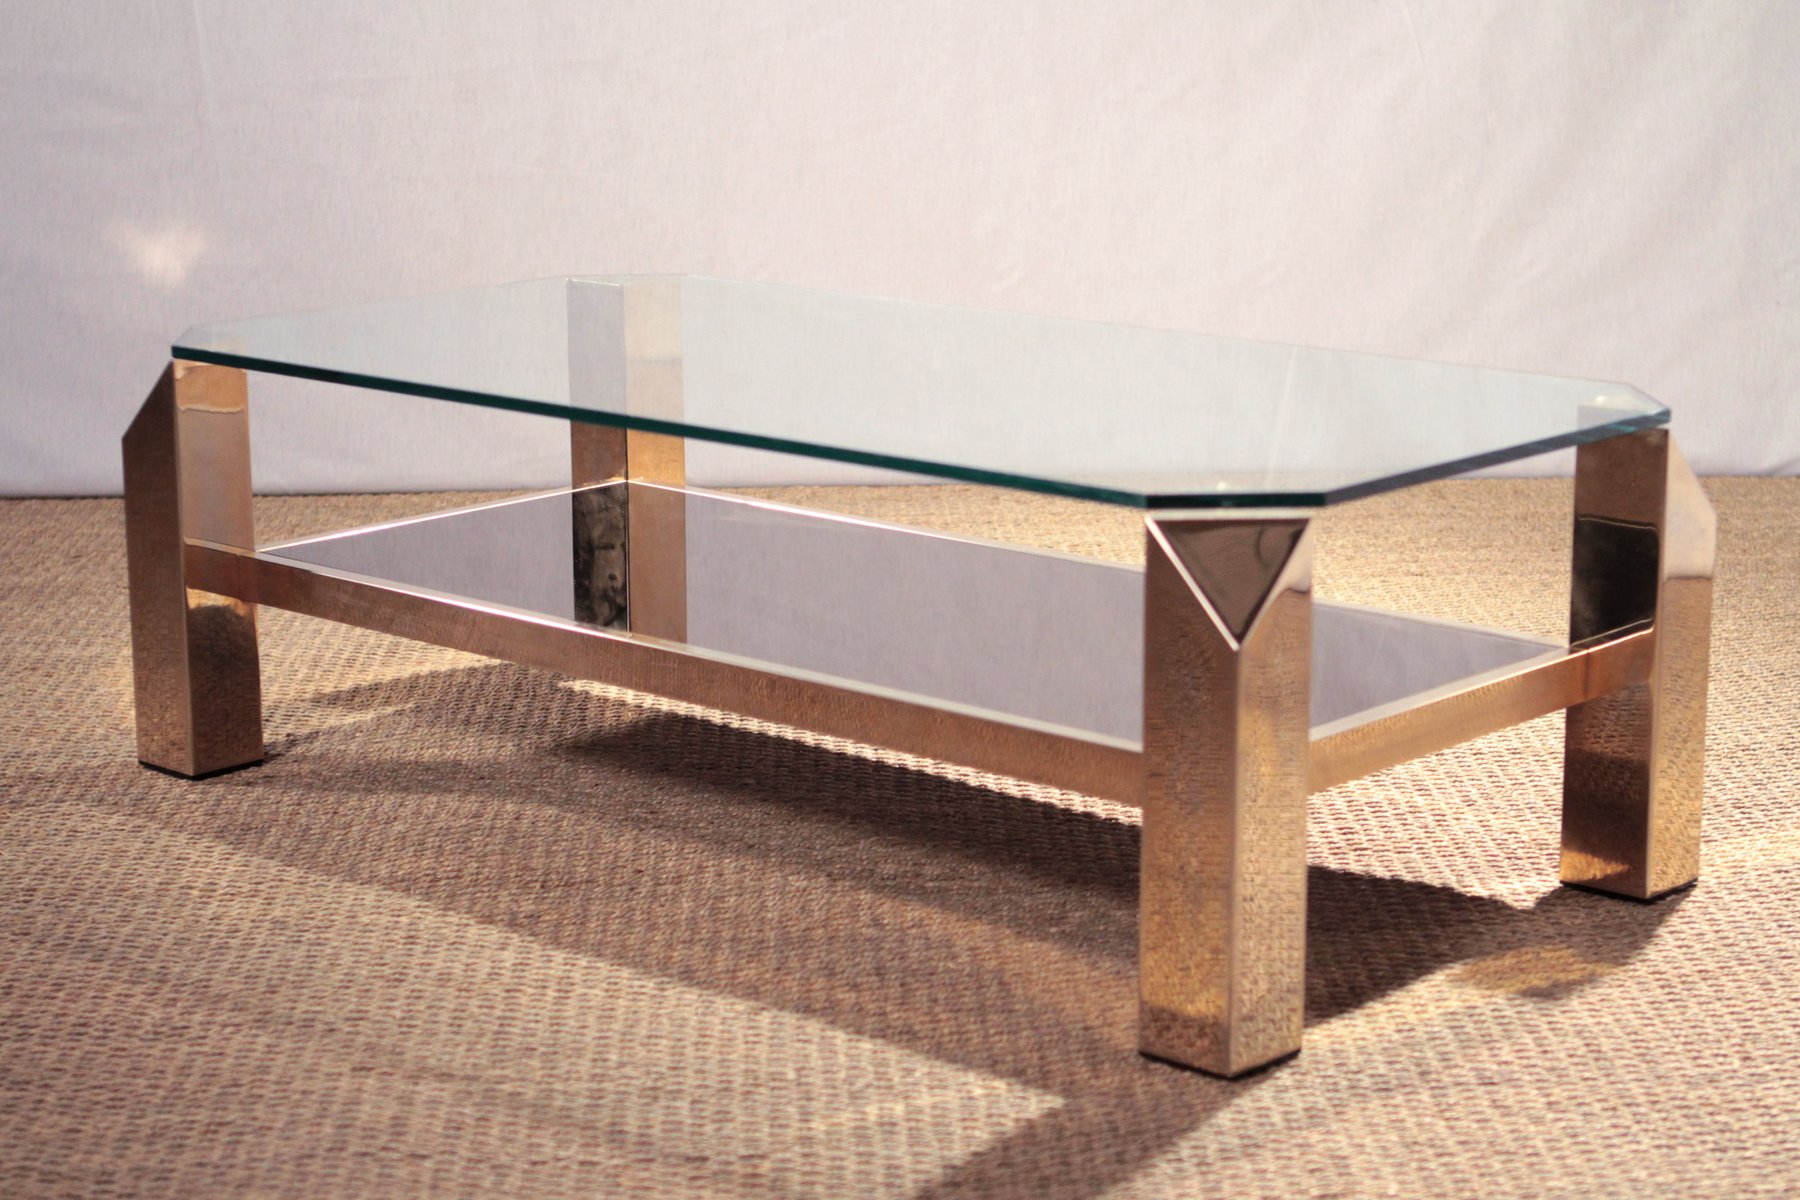 Elegant Gilded Coffee Table From Belgochrom, 1970s 8. $1,386.00. Price Per Piece